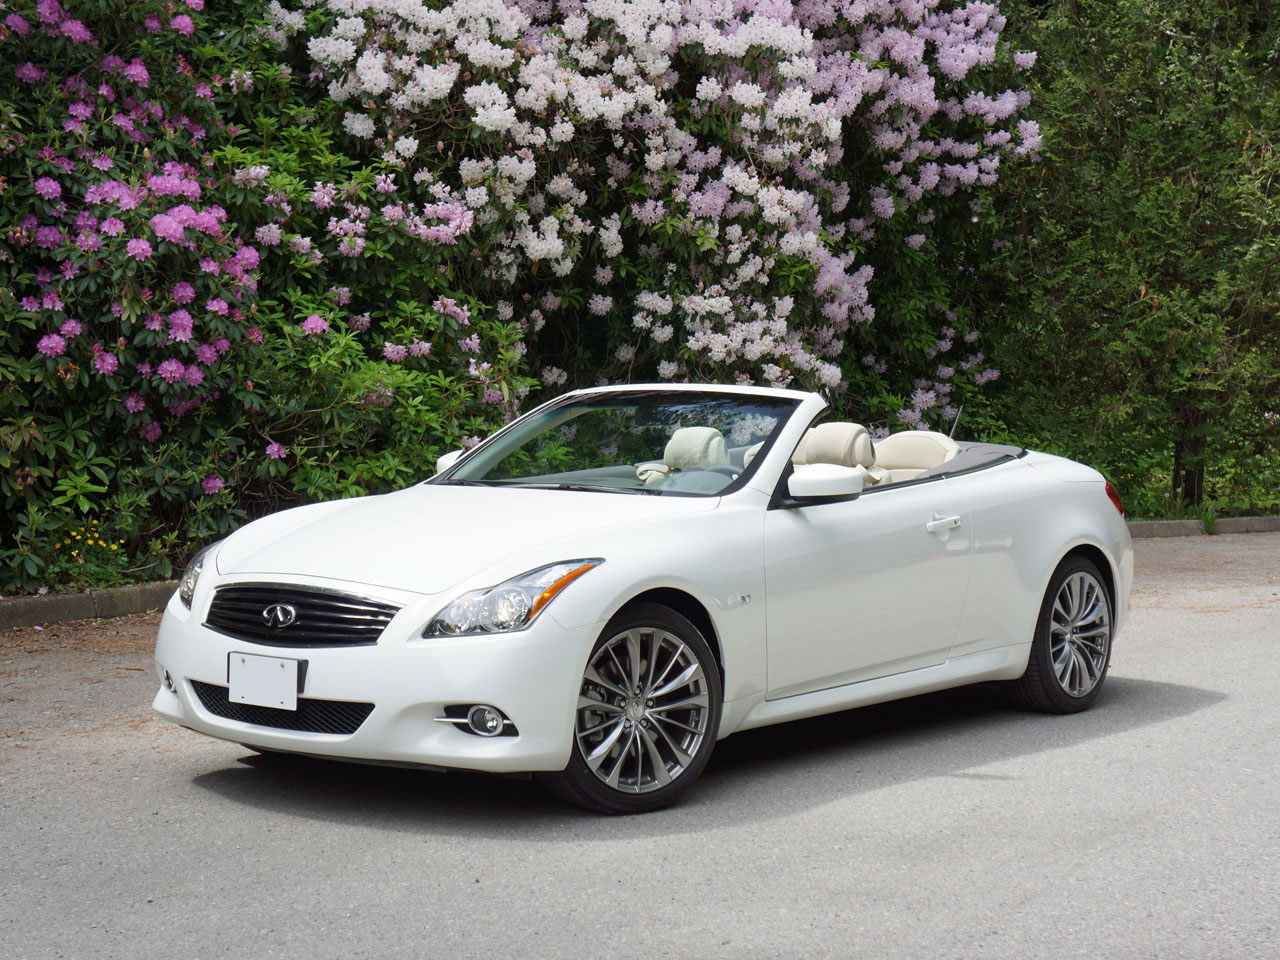 2014 infiniti q60 convertible road test review carcostcanada. Black Bedroom Furniture Sets. Home Design Ideas